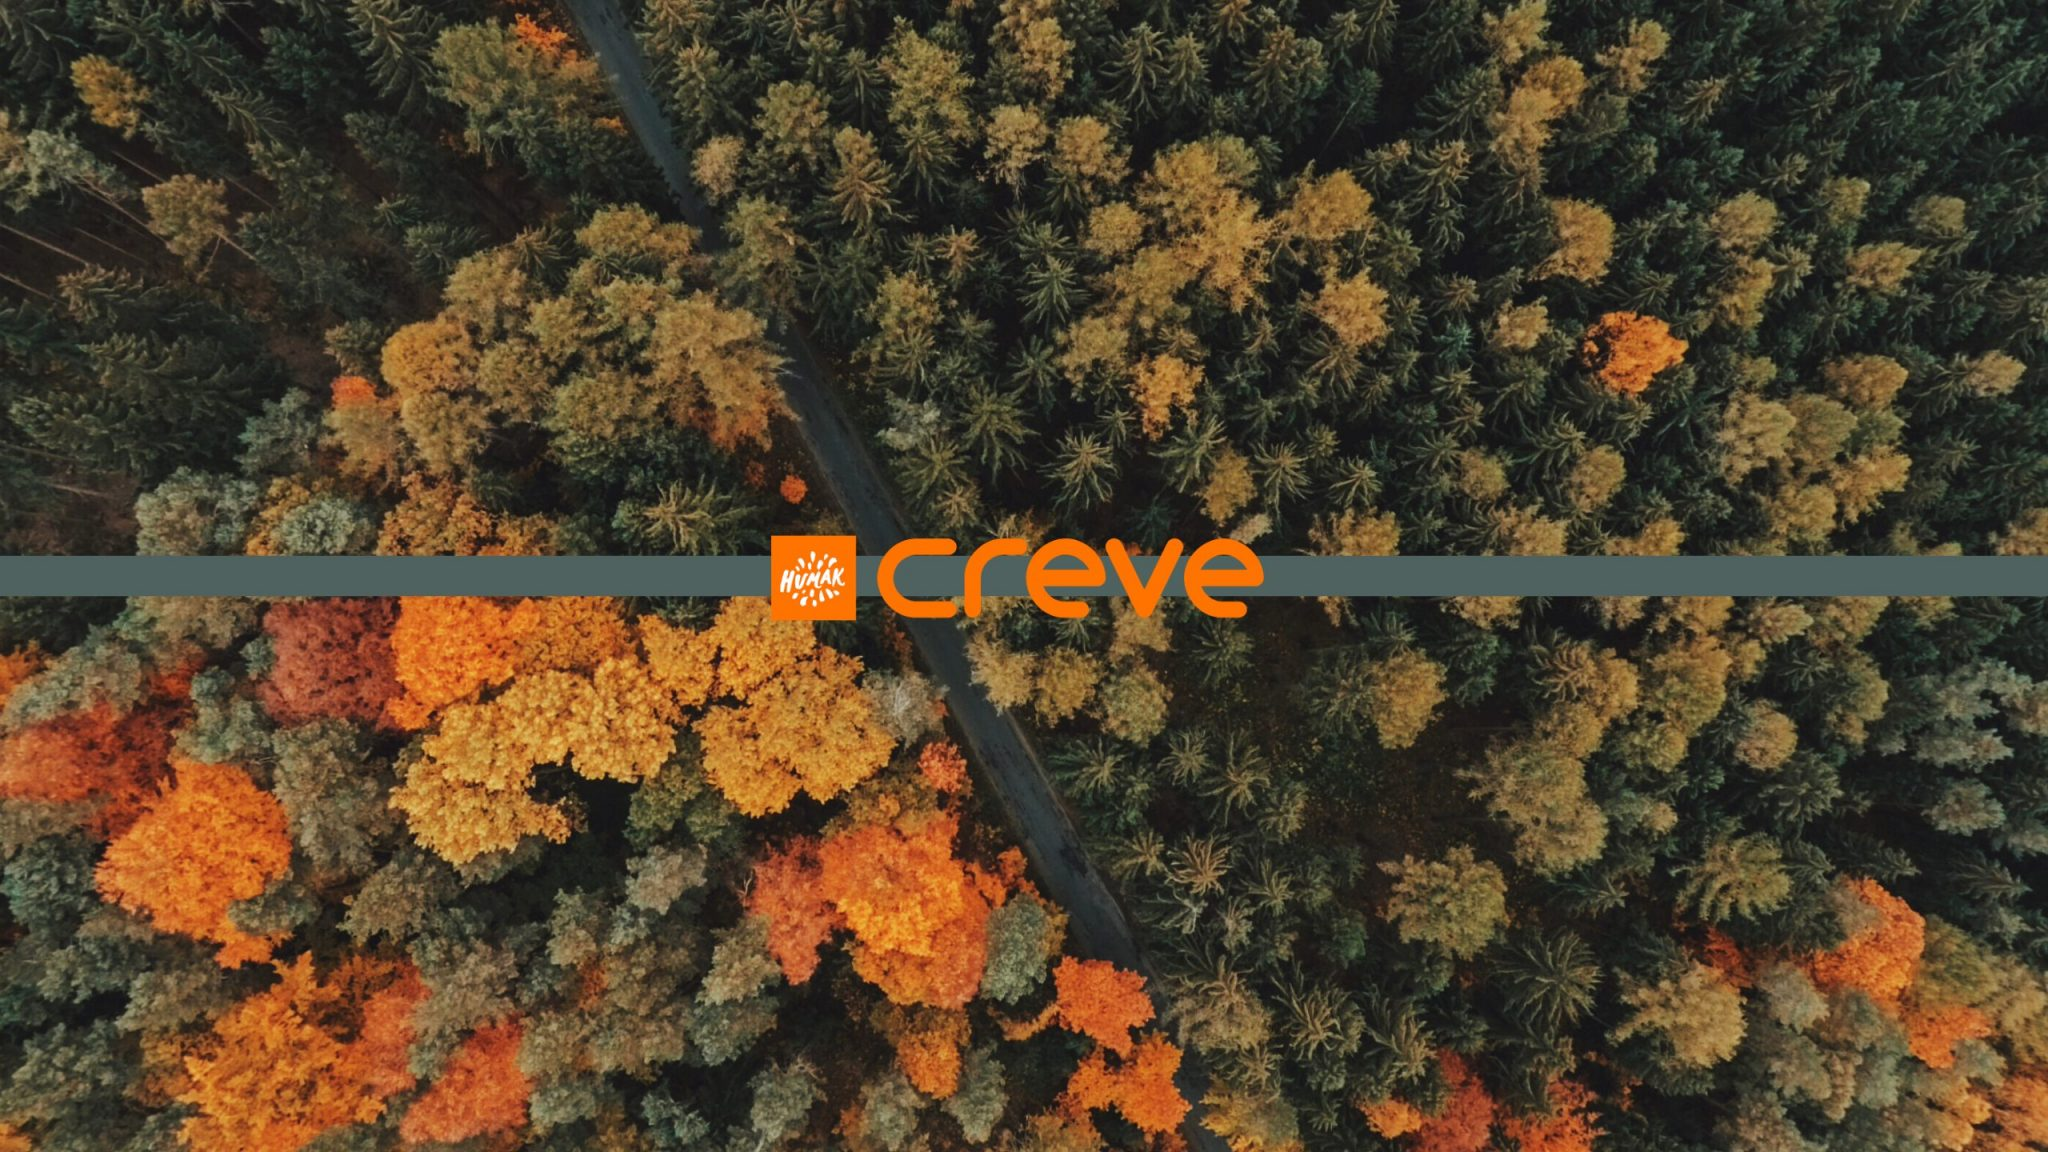 A picture of an autumnal forest viewed from above. A textual Creve logo superimposed in the middle of the image.